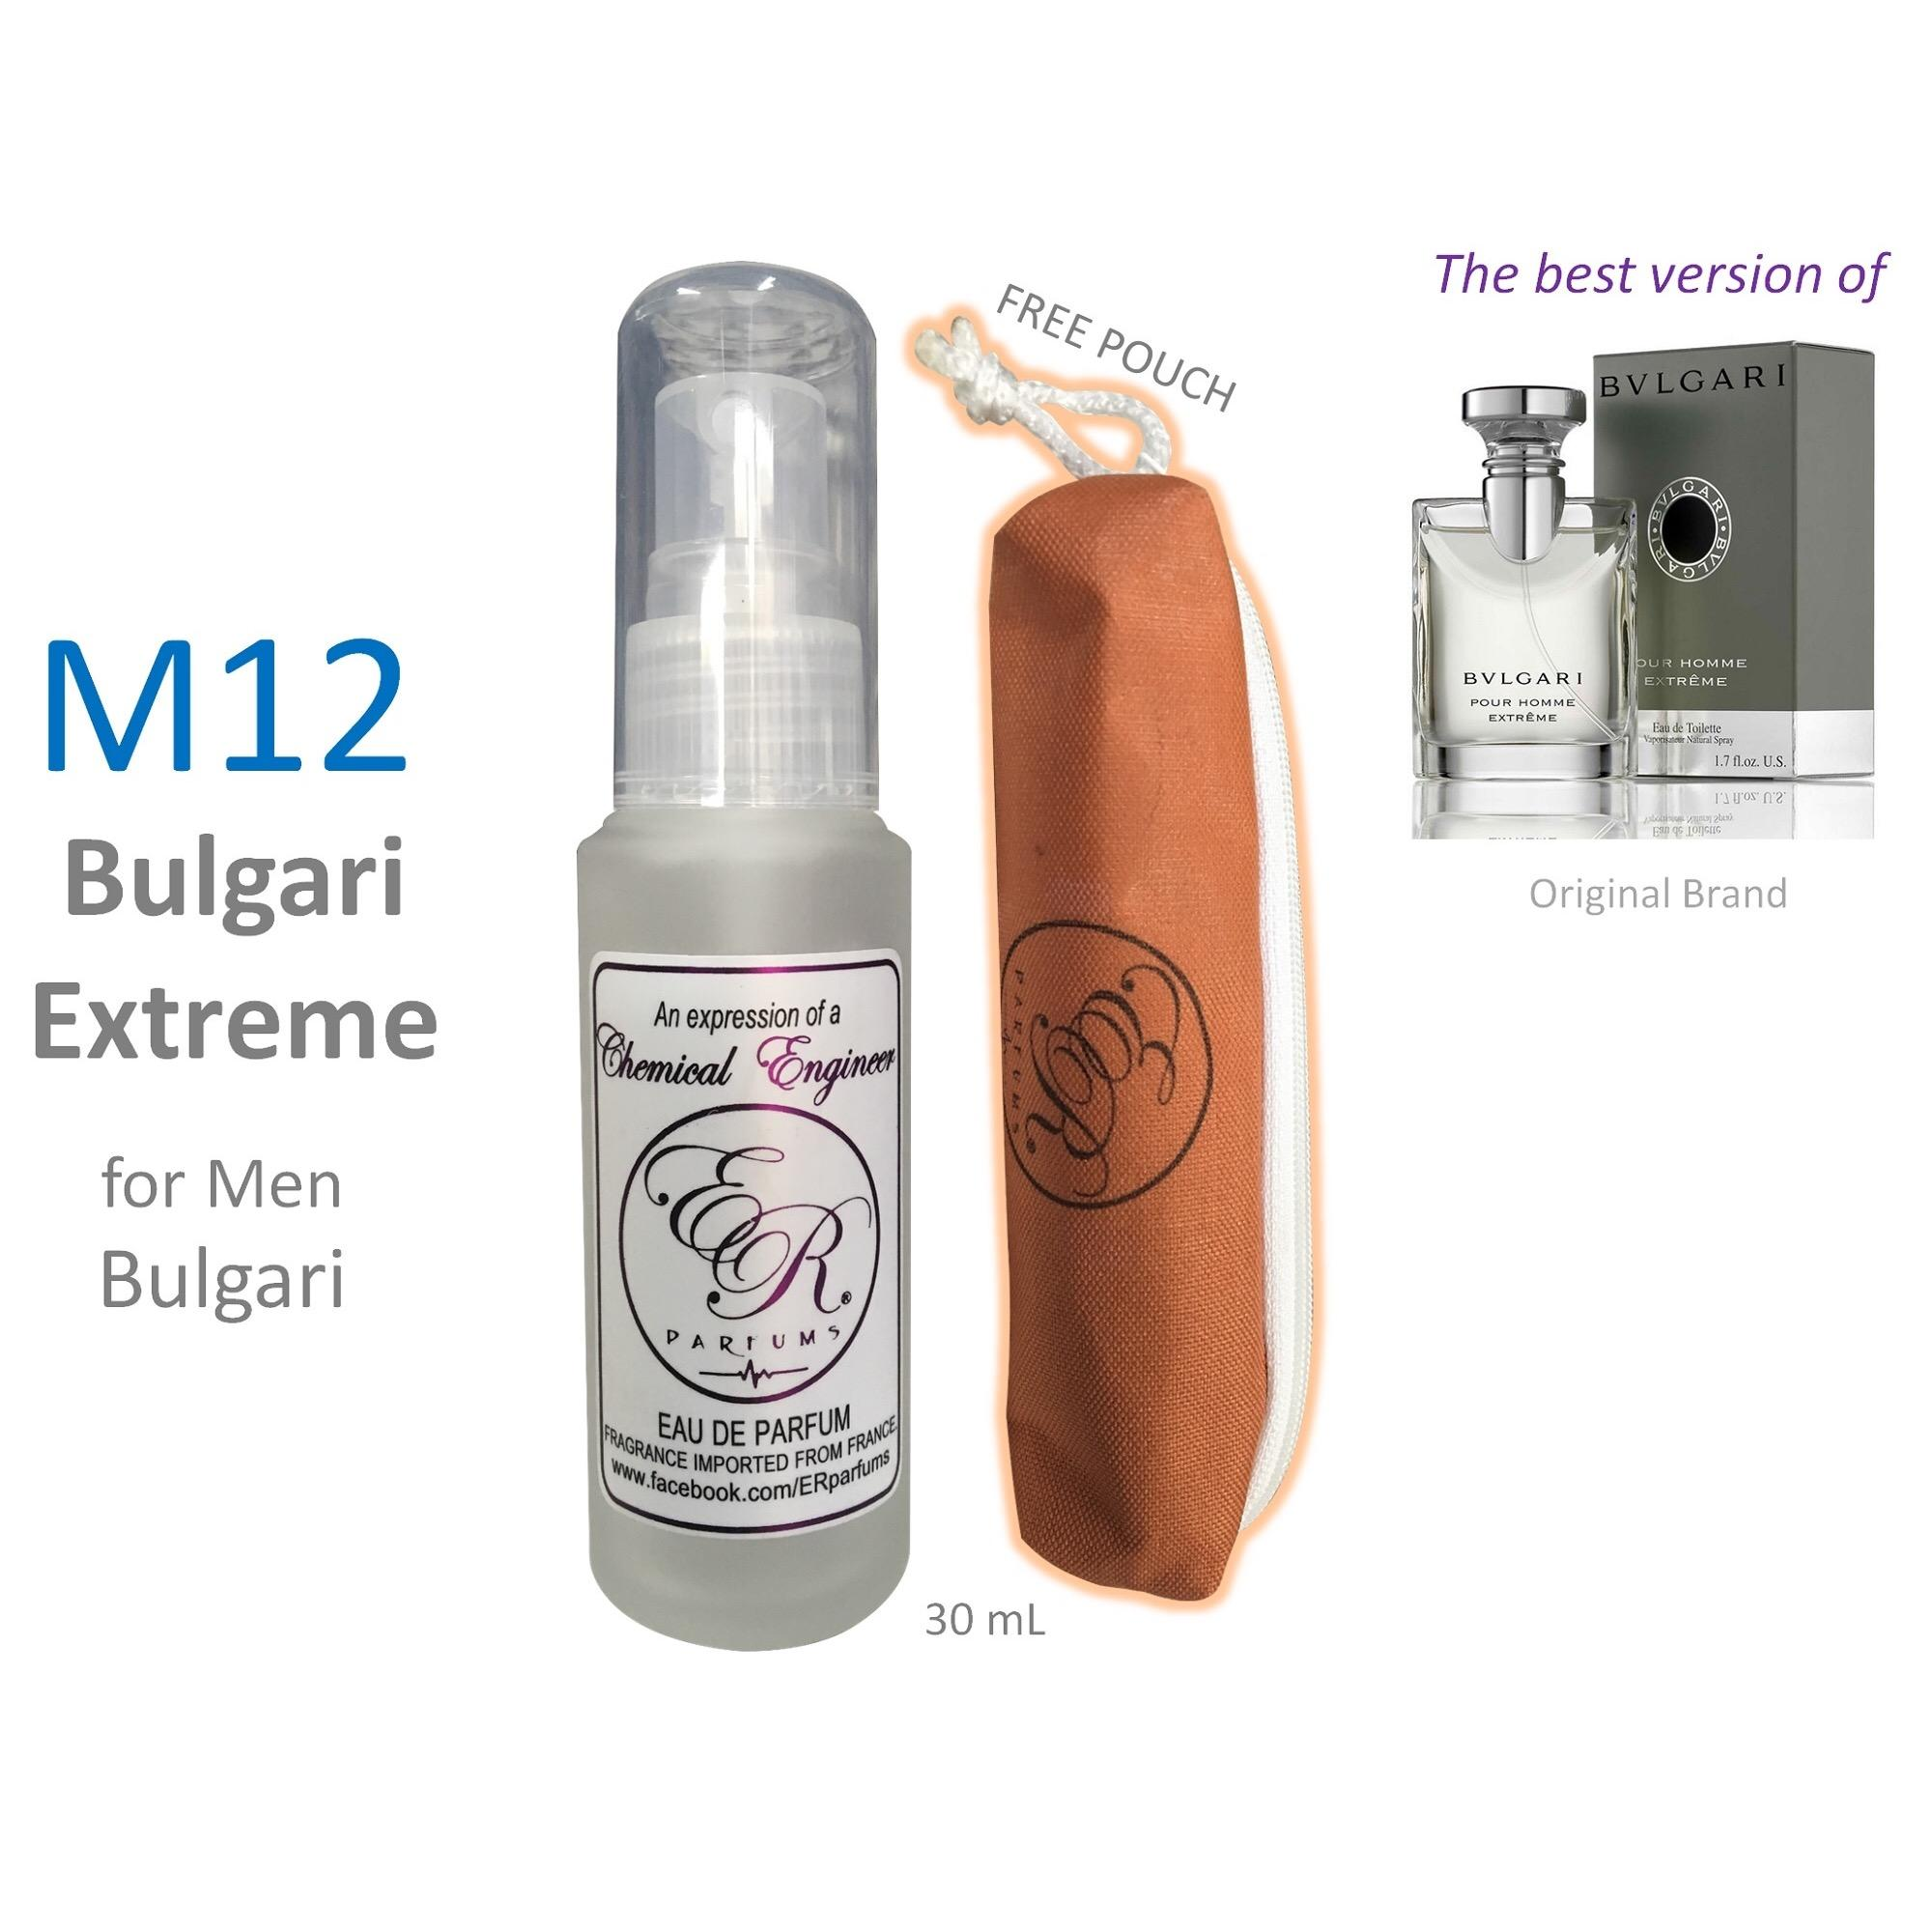 ER PARFUMS M12 Bulgari Extreme for Men by Bulgari 1 piece 30 mL perfume with free pouch (Best Seller) - thumbnail